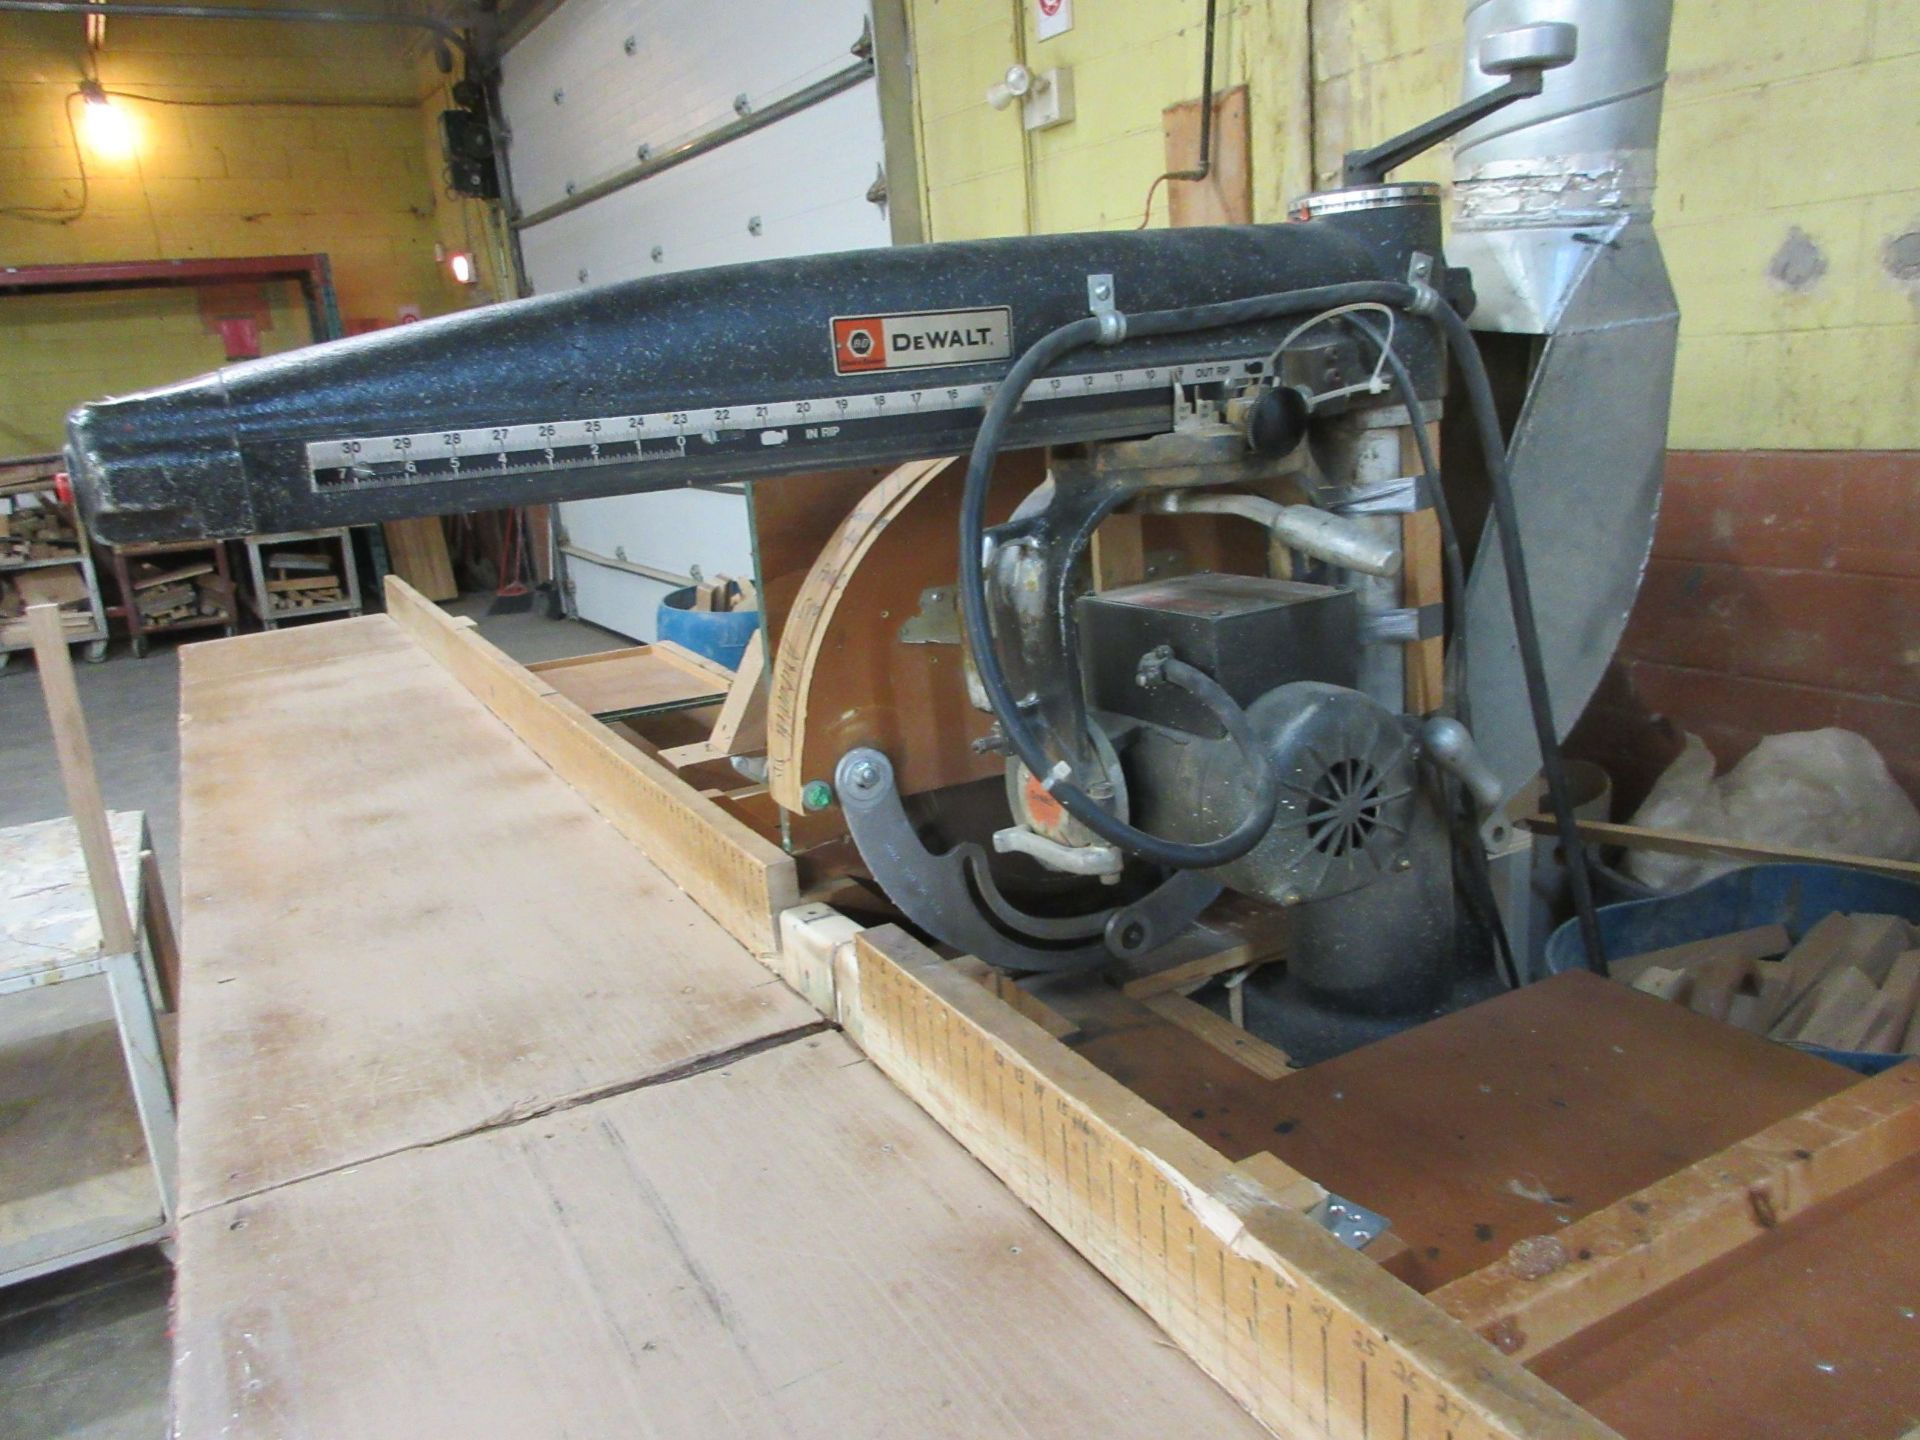 """DEWALT radial saw 16"""" Mod: 3526-02, 600 volts (SUBJECT TO BANK APPROVAL) - Image 3 of 3"""